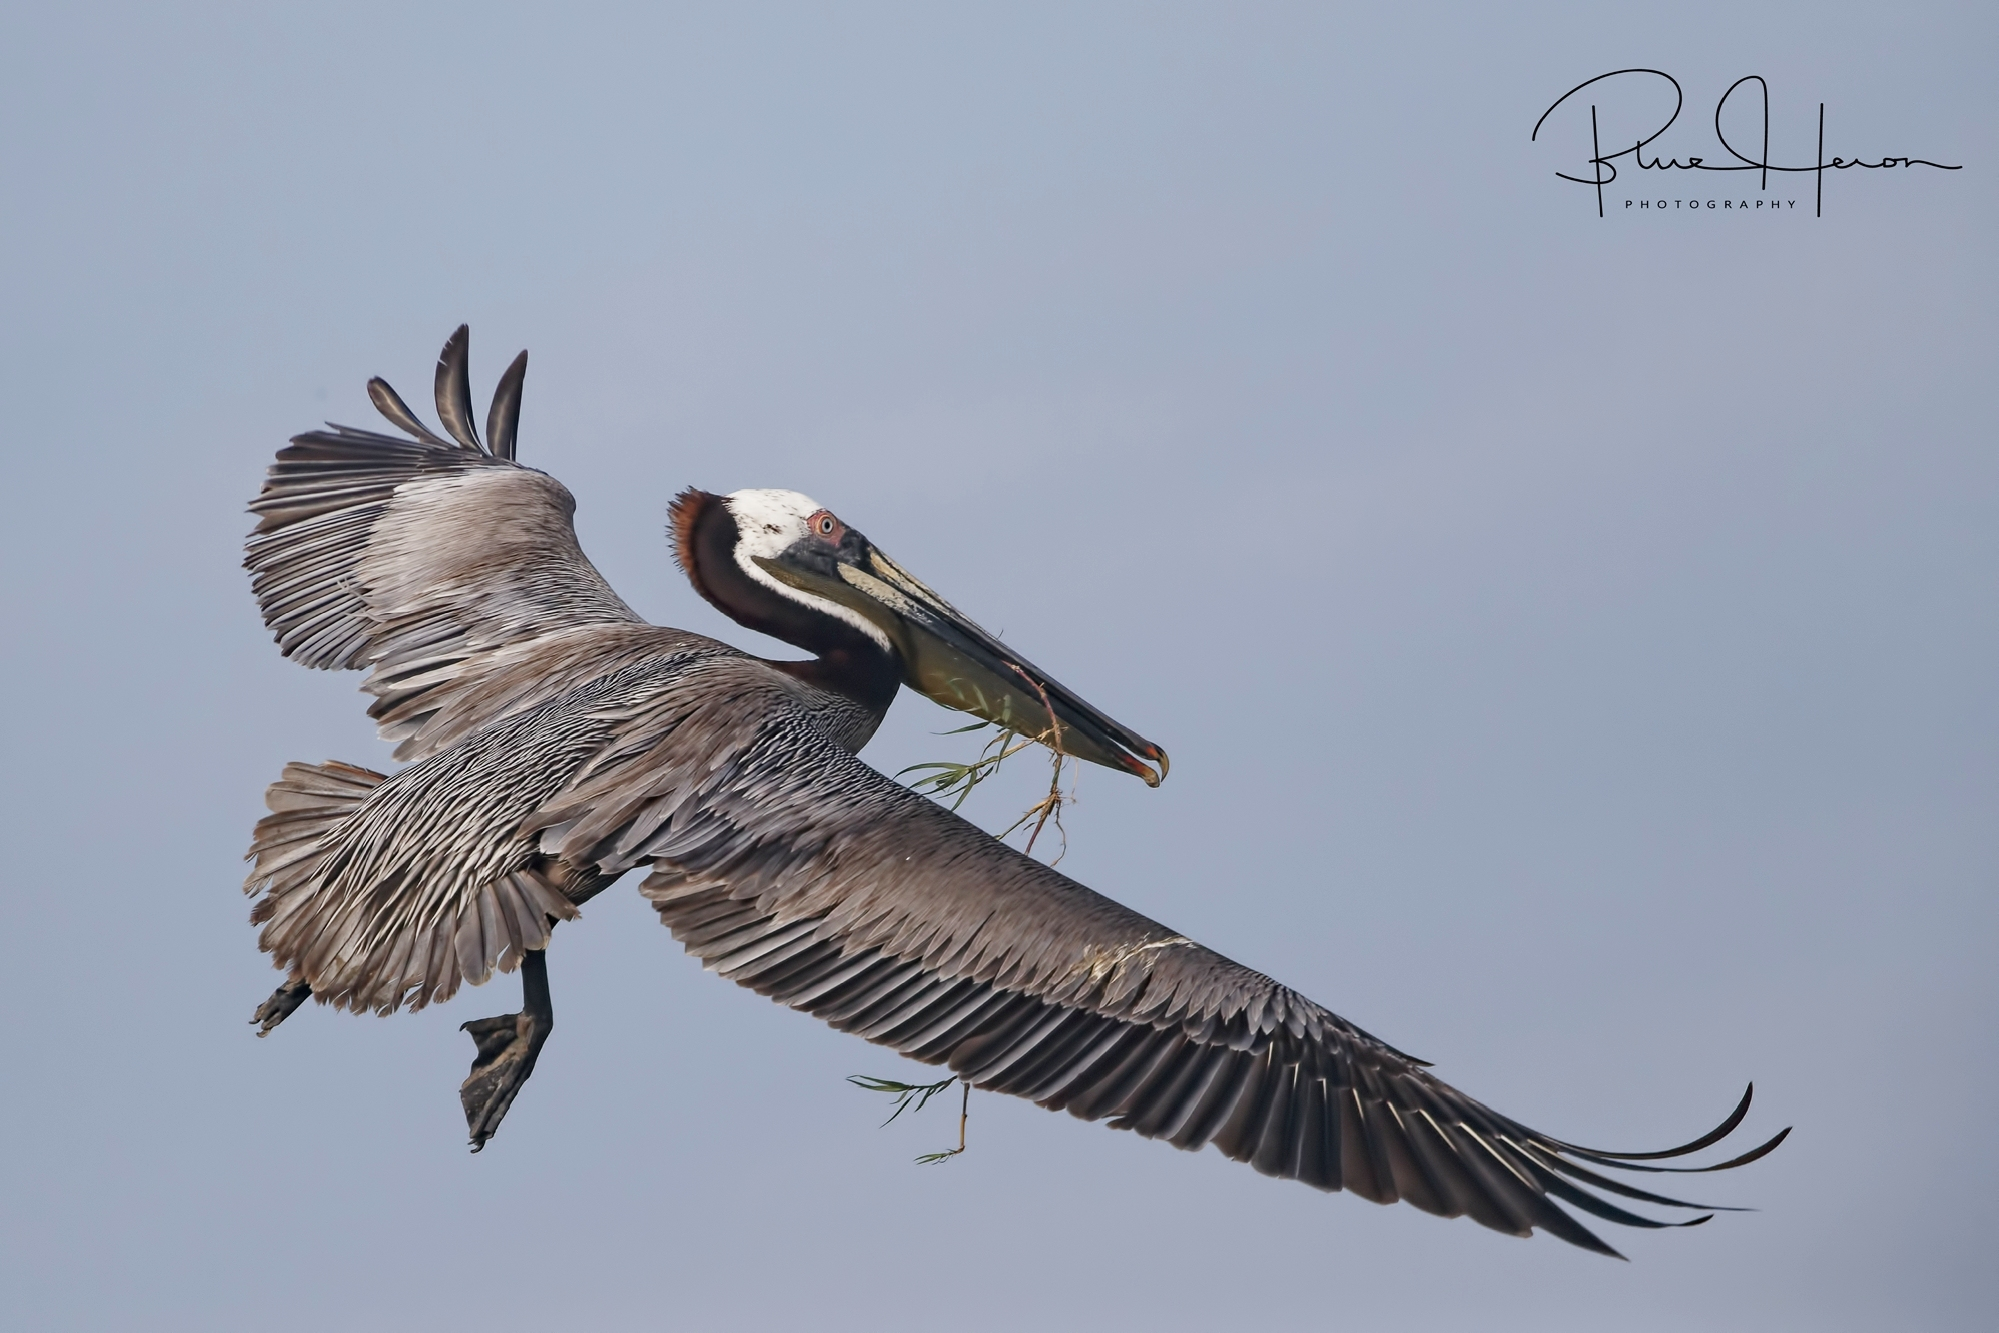 Brown Pelican bringing nesting material to the nest site